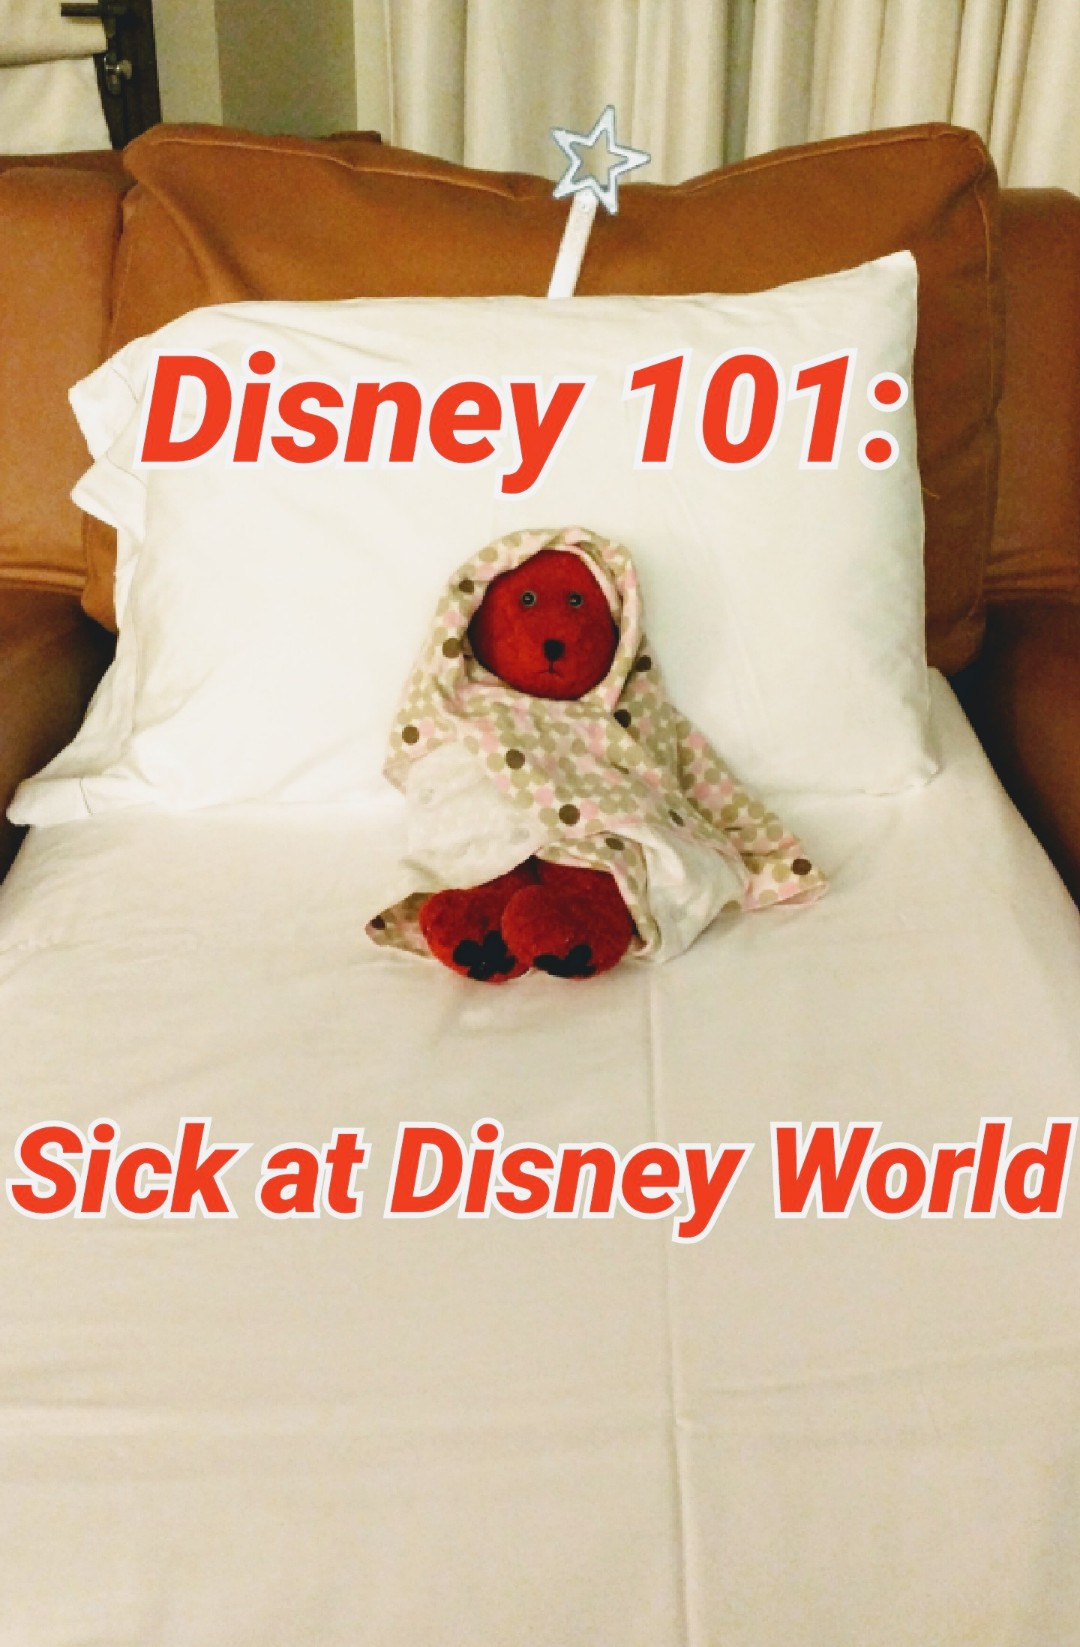 Being sick at Disney World is no fun. Knowing what to do just in case you do end up sick while at Disney World is some of the best advice I can give, but hope you never need. #disneyworld #sickatdisney #disneyplanning